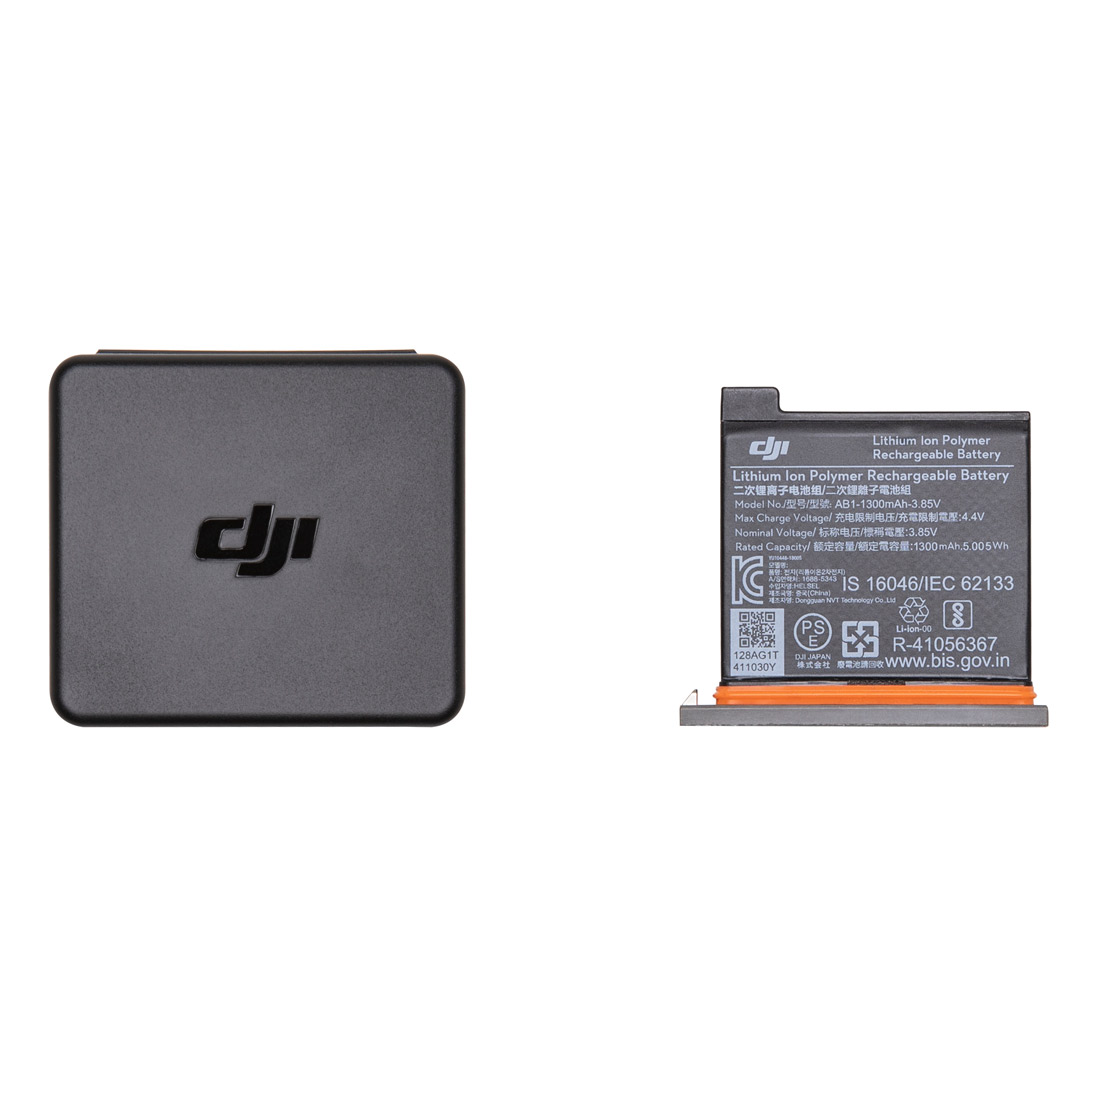 DJI Osmo Action Battery for Osmo Action 4K Camera